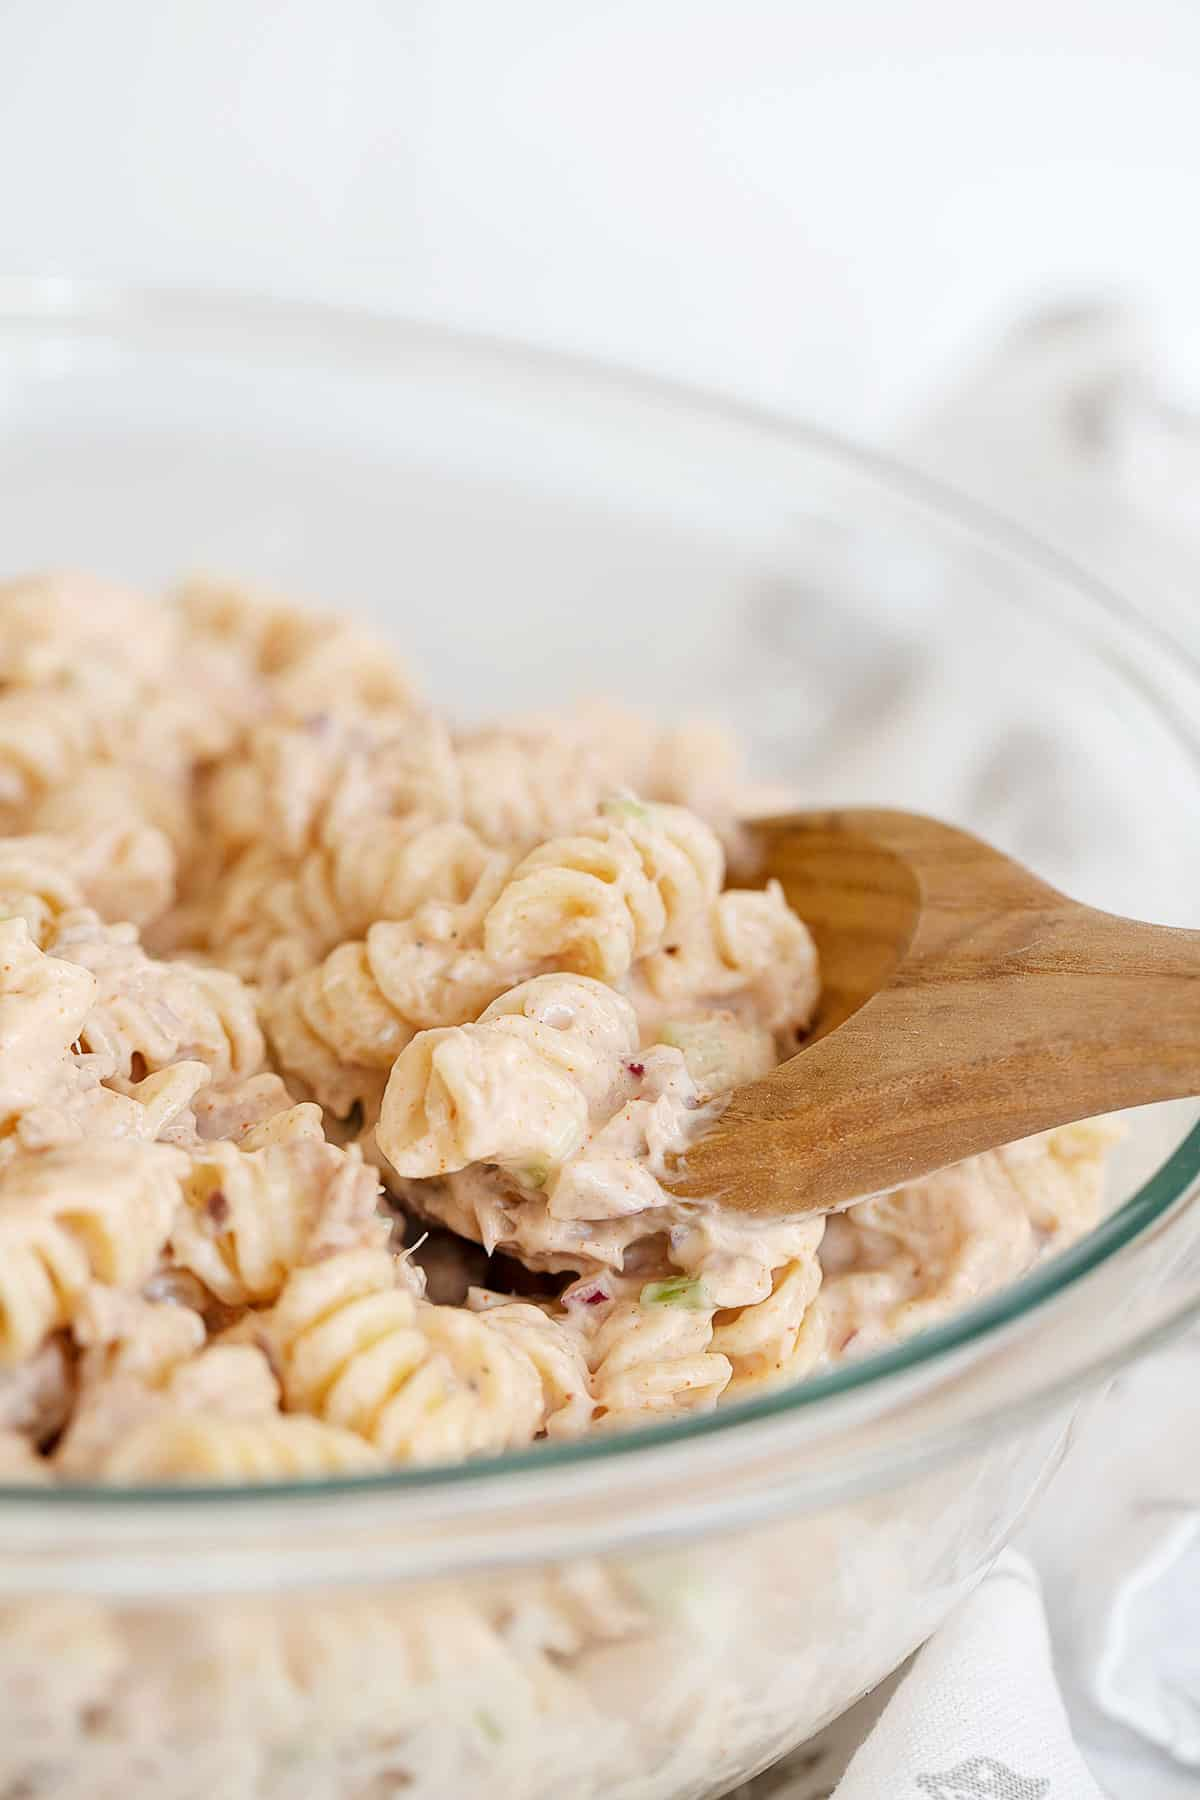 tuna pasta salad in glass bowl with wooden spoon